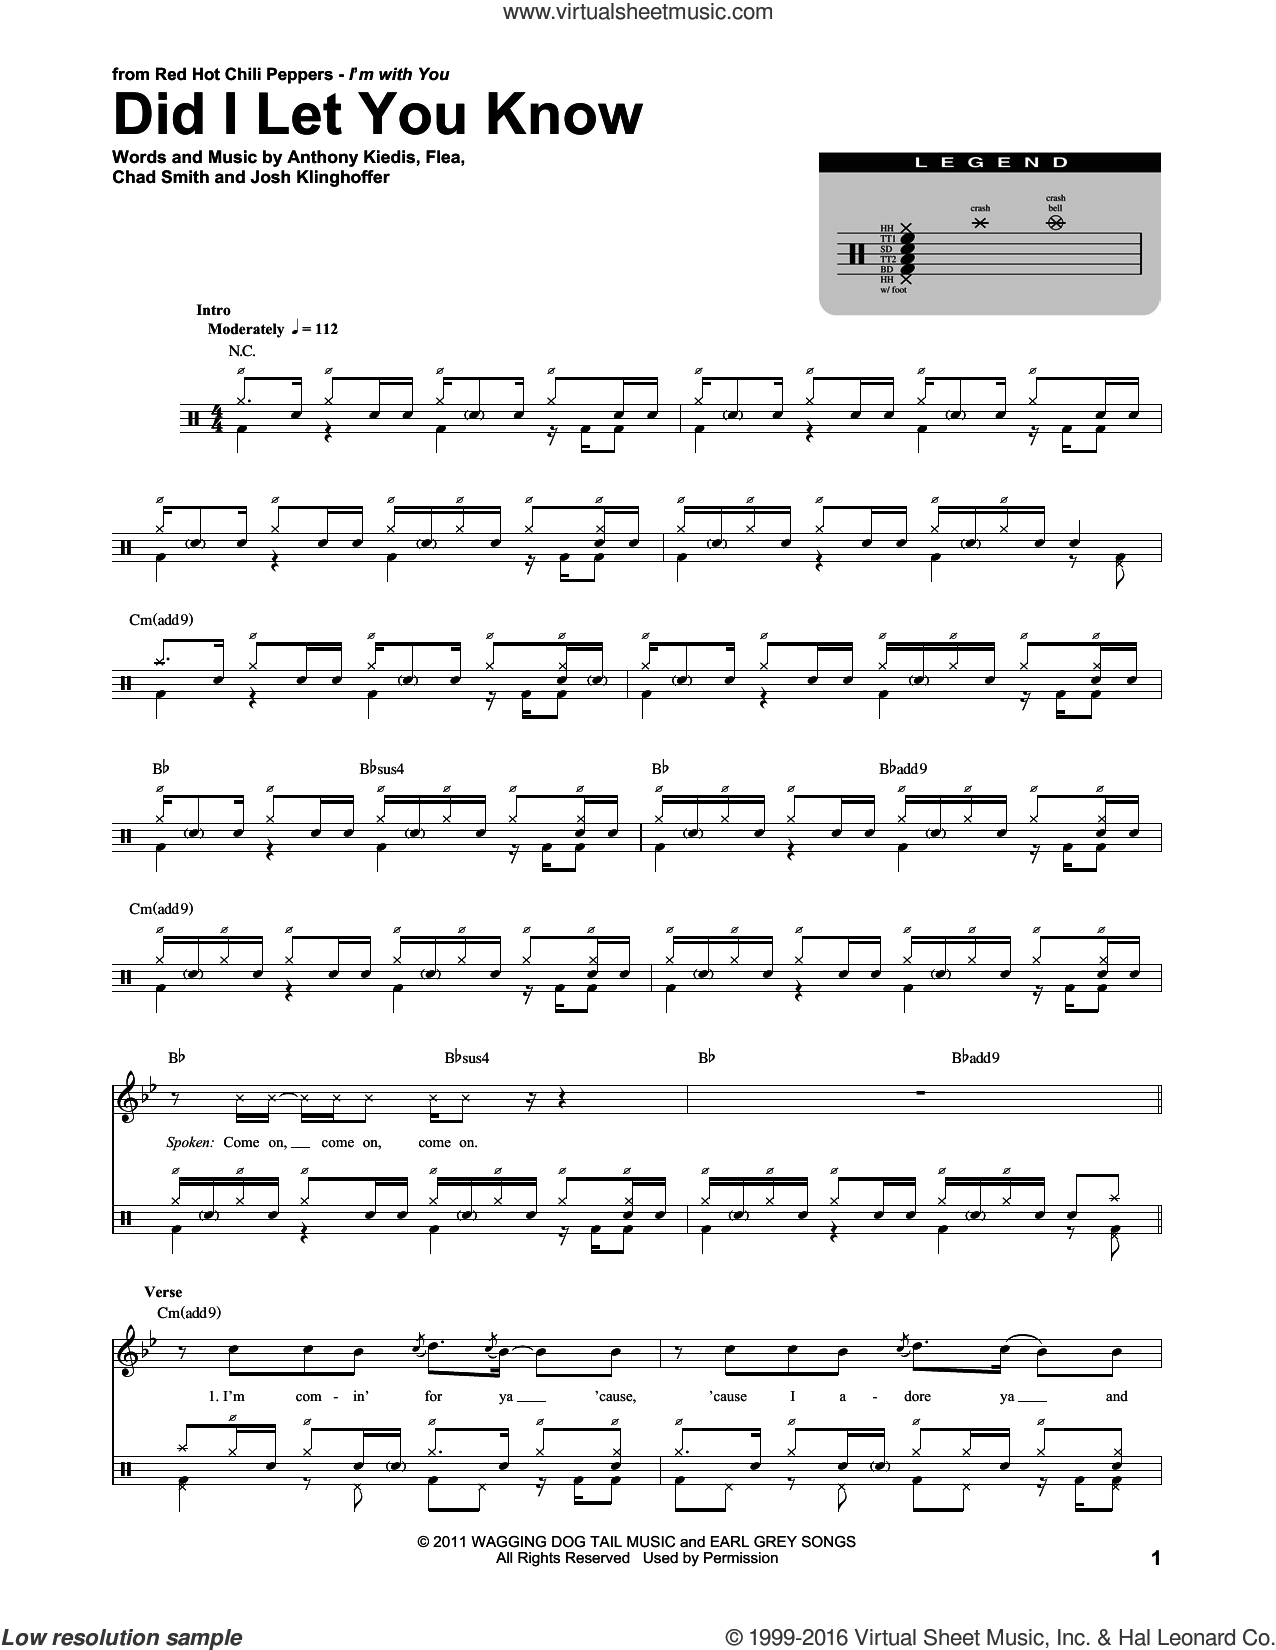 Did I Let You Know sheet music for drums by Red Hot Chili Peppers, Anthony Kiedis, Chad Smith, Flea and Josh Klinghoffer, intermediate skill level